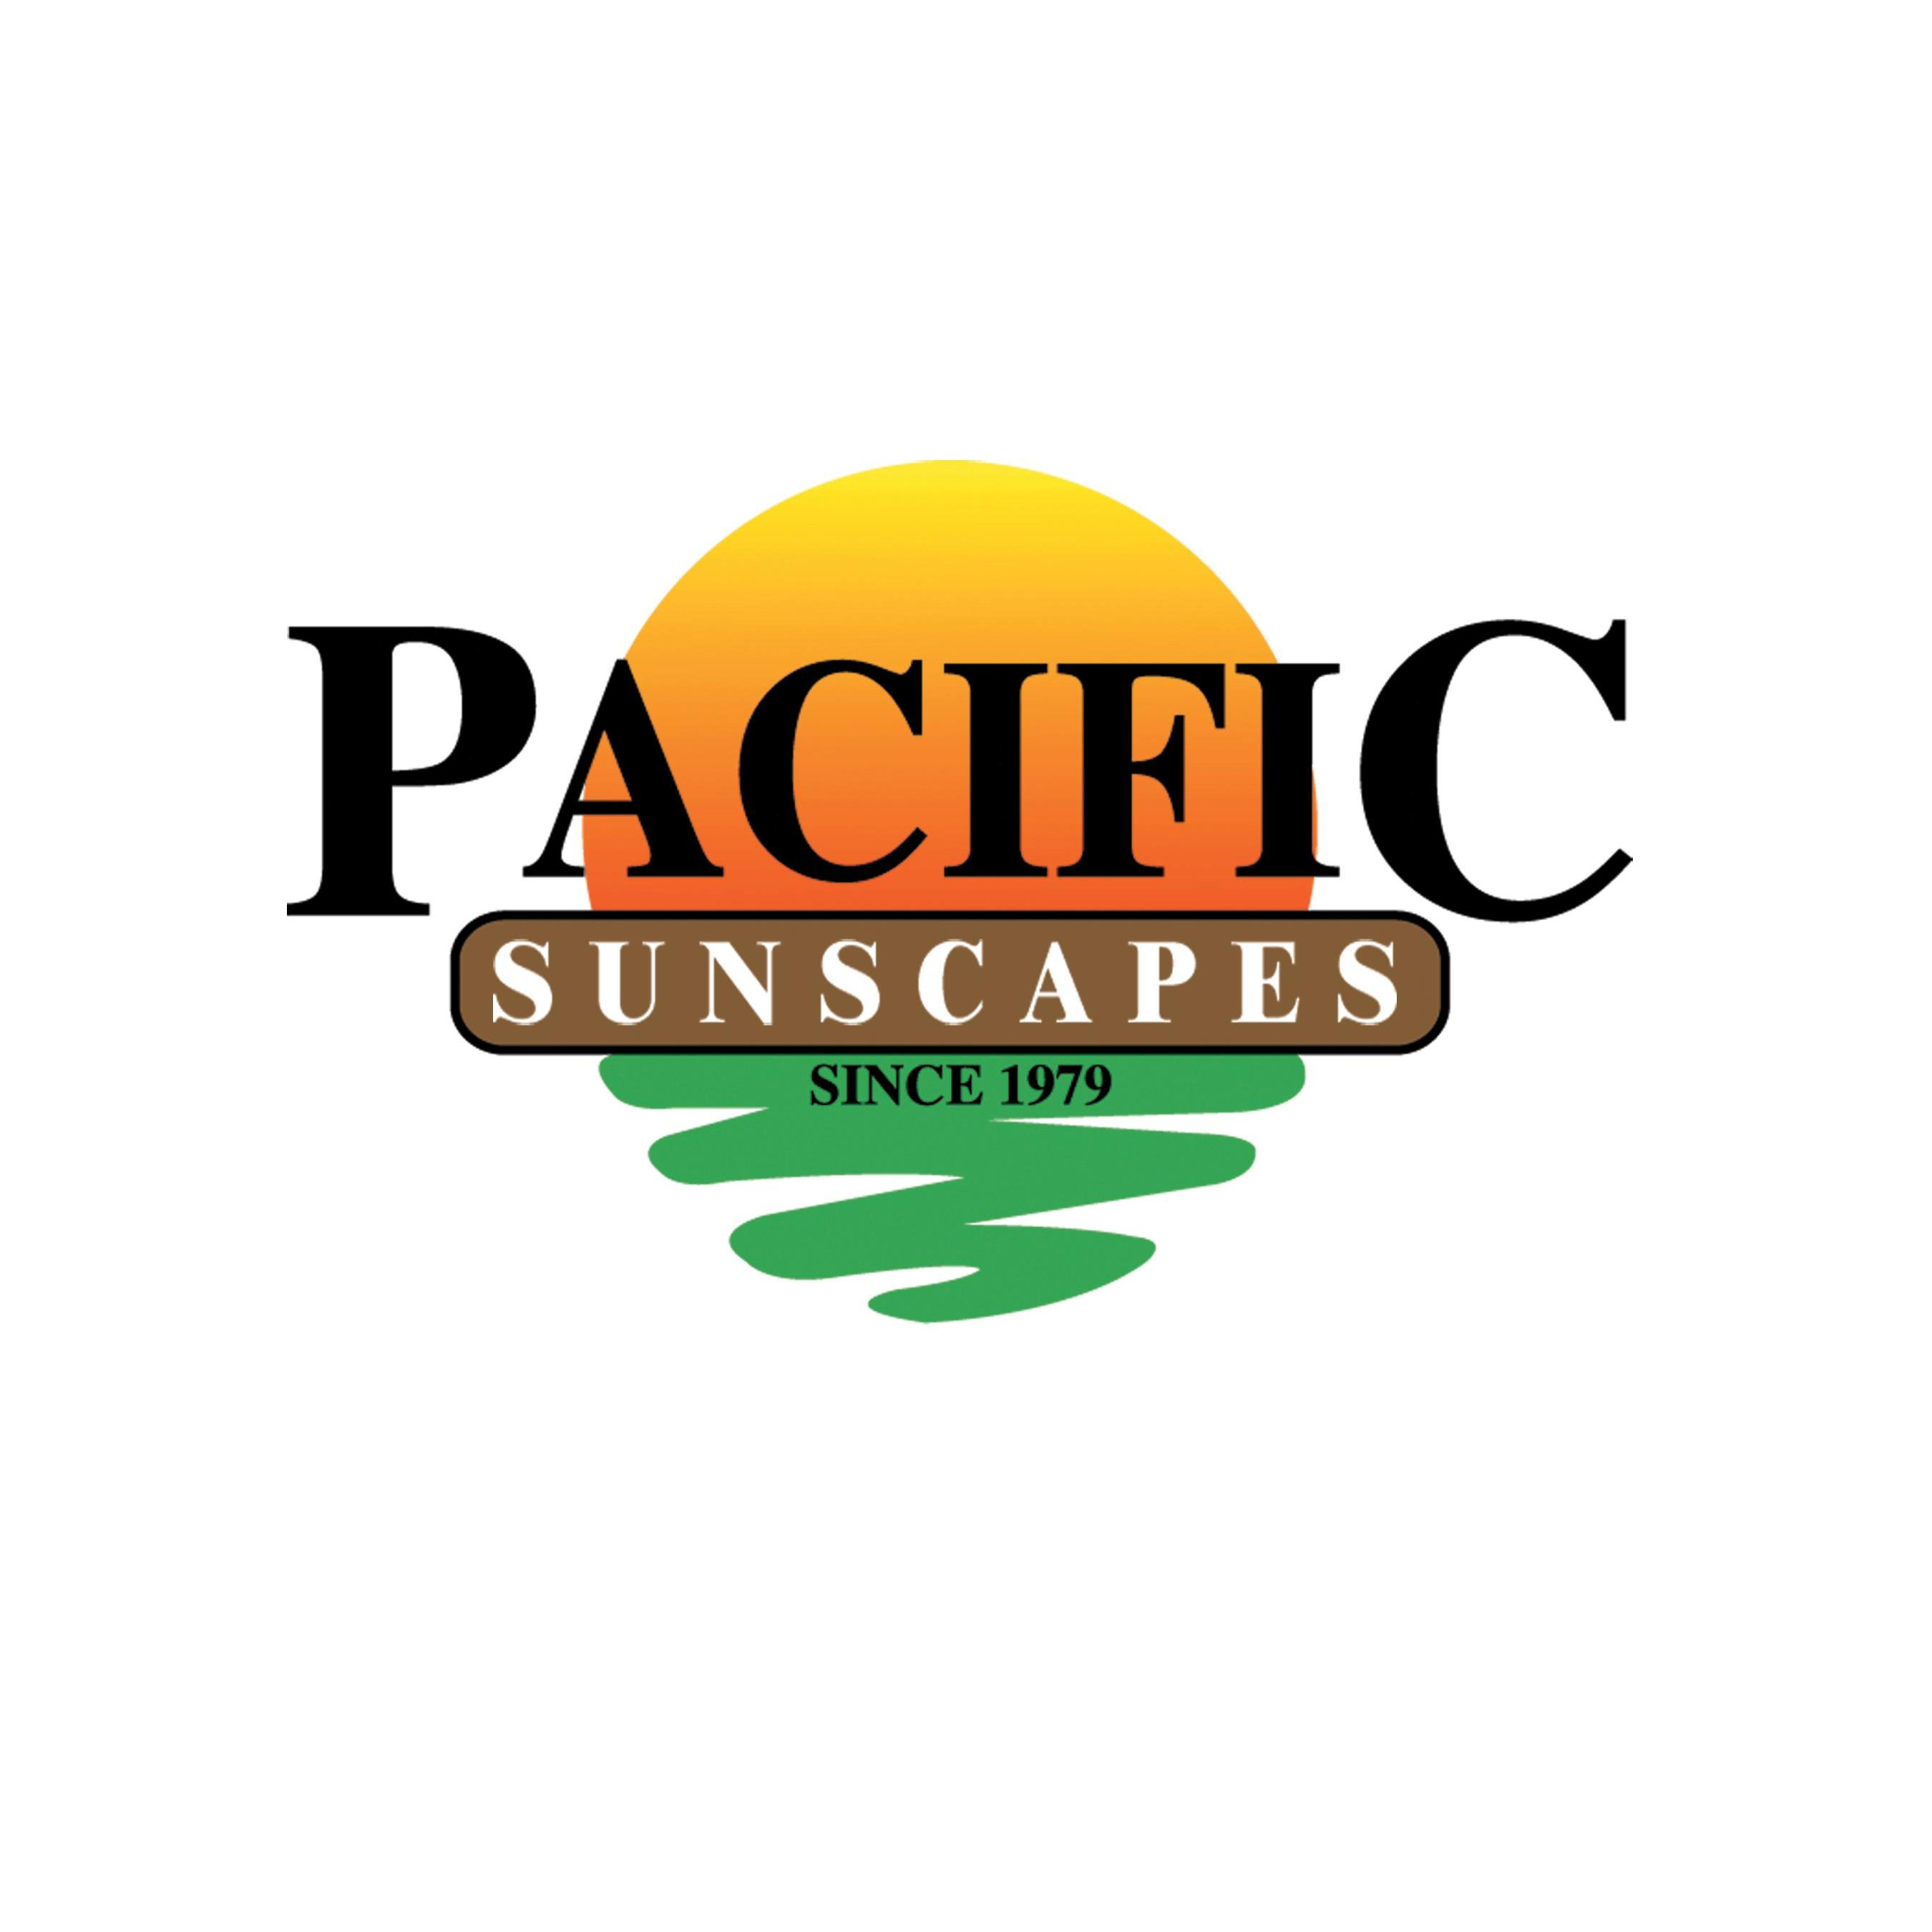 Pacific Sunscapes